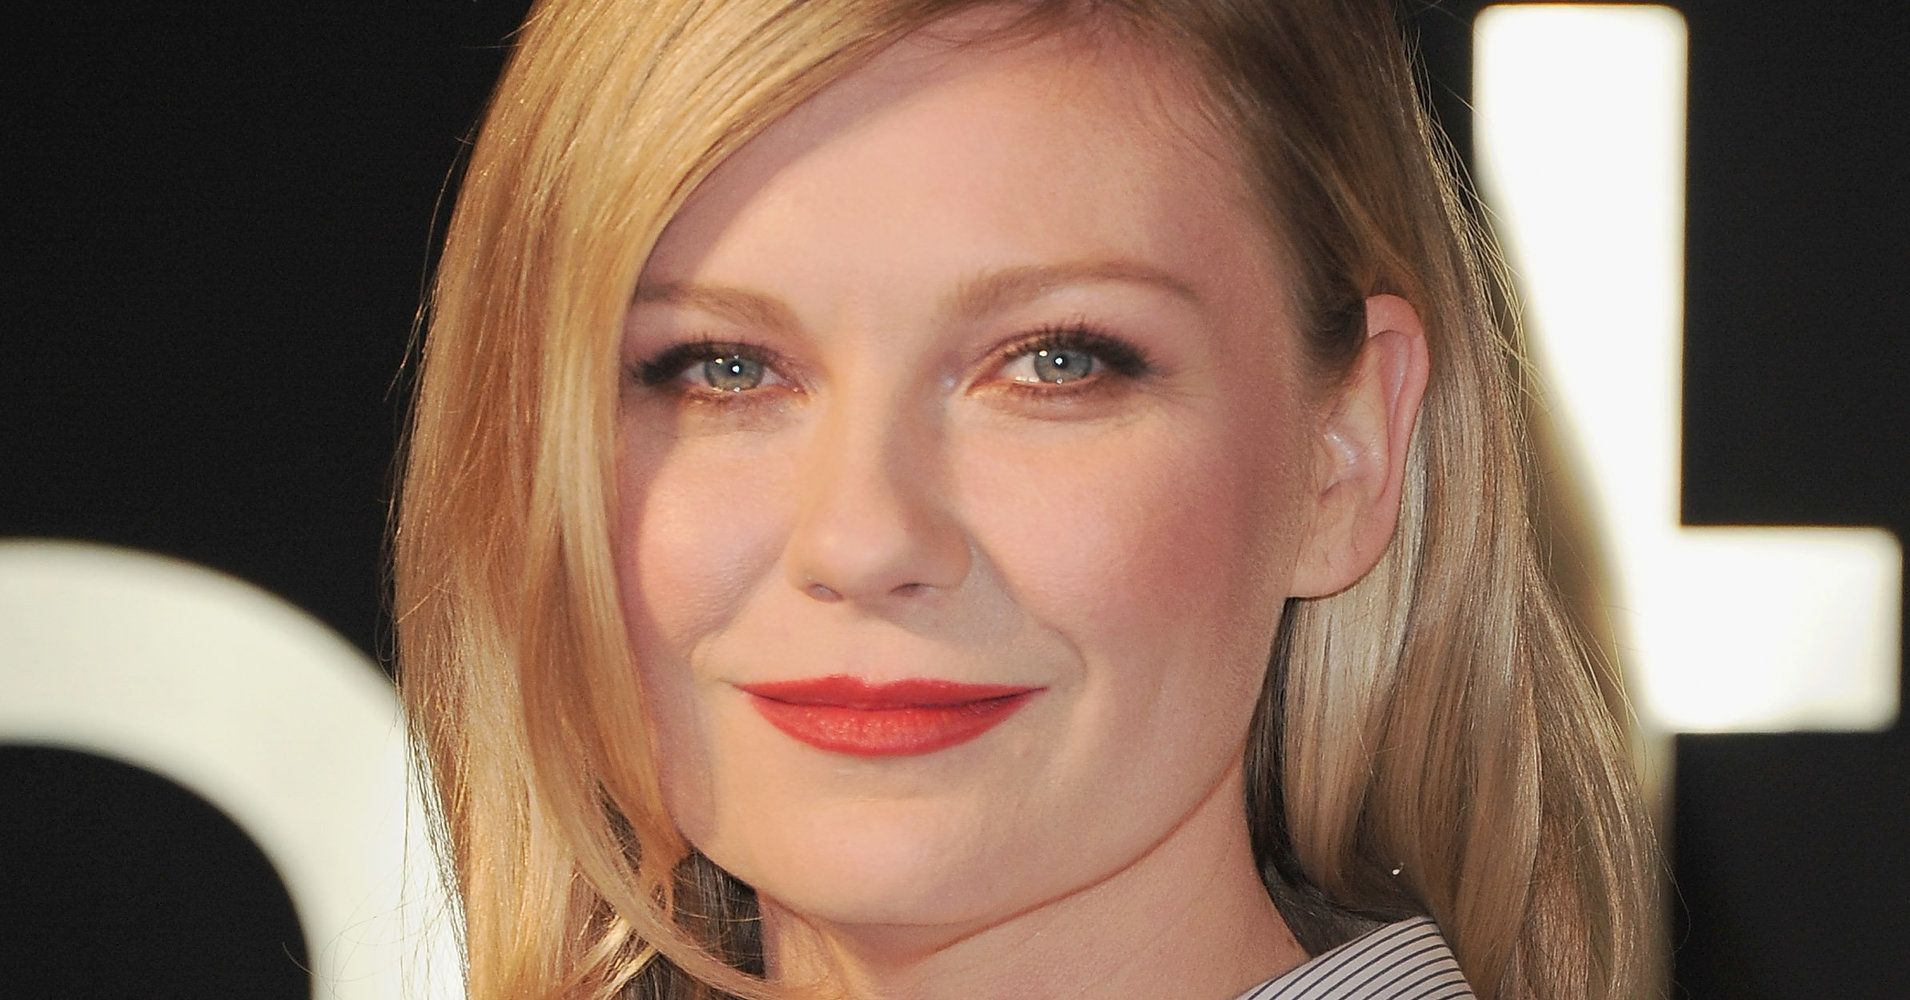 Kirsten Dunst Isnt Going To See Spider Man Reboots Or Fix Her